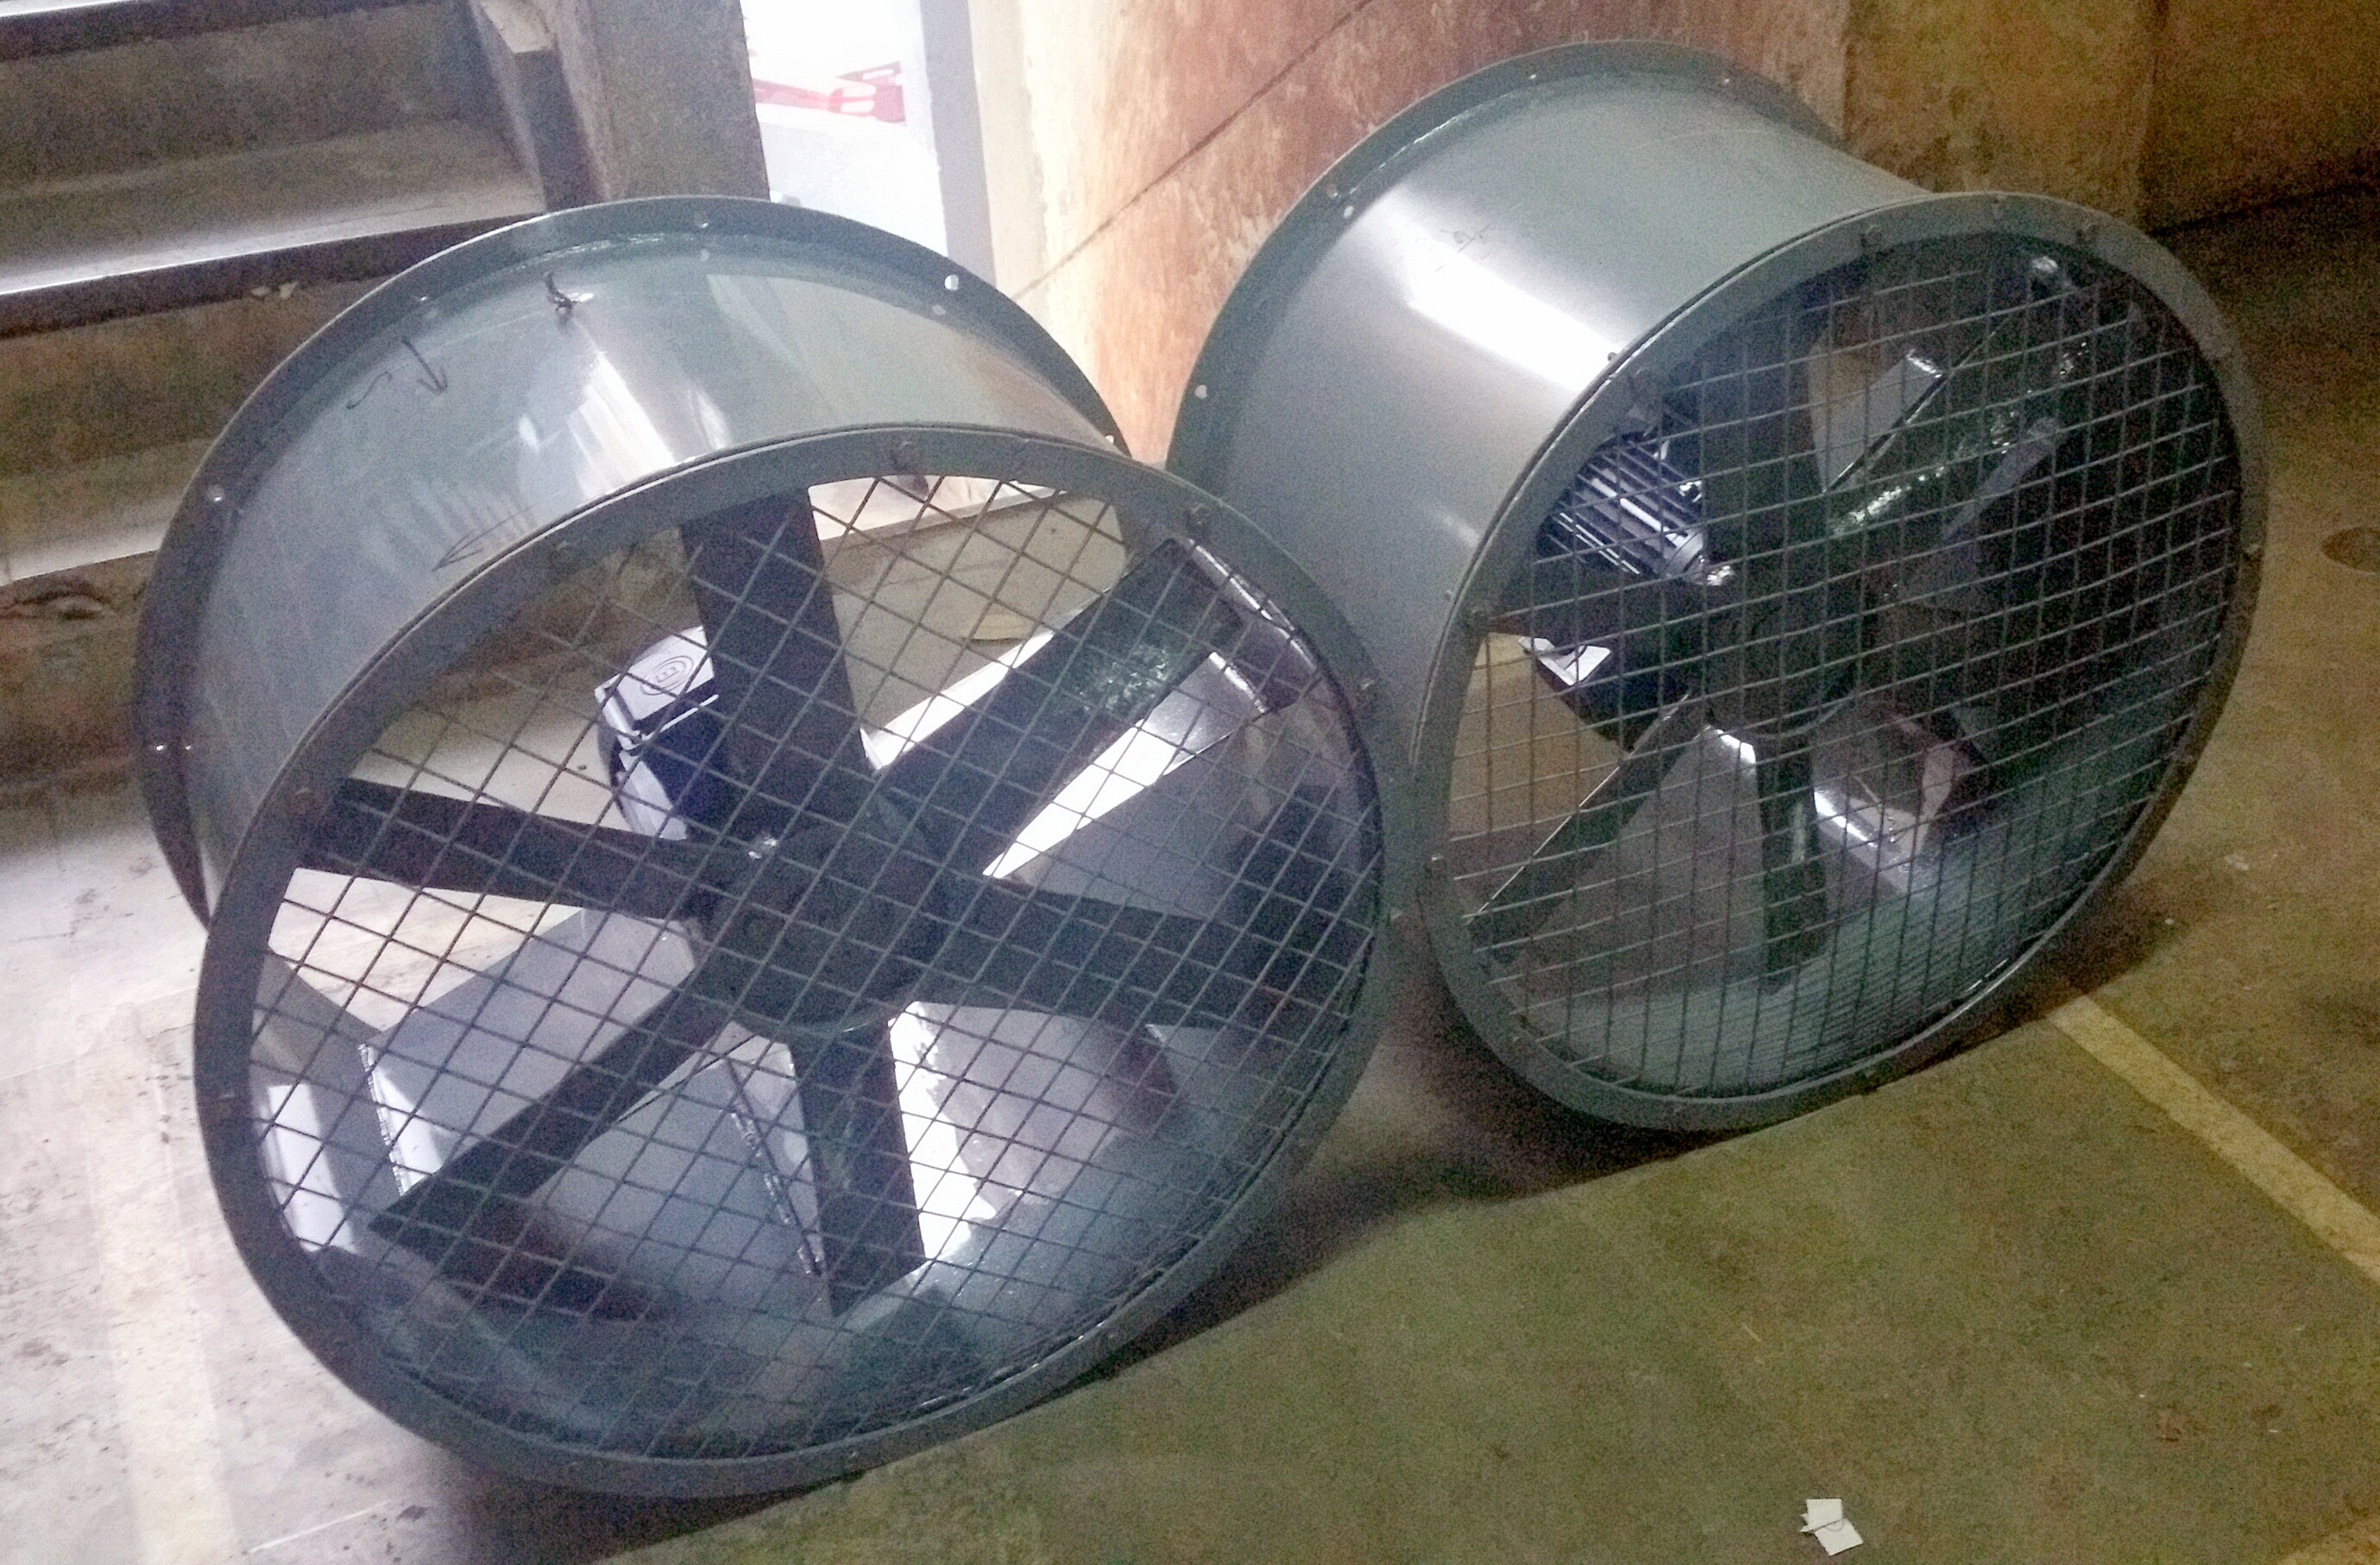 Axial Axial Blower Fans : Induced draft blowers axial fans hi therm boilers